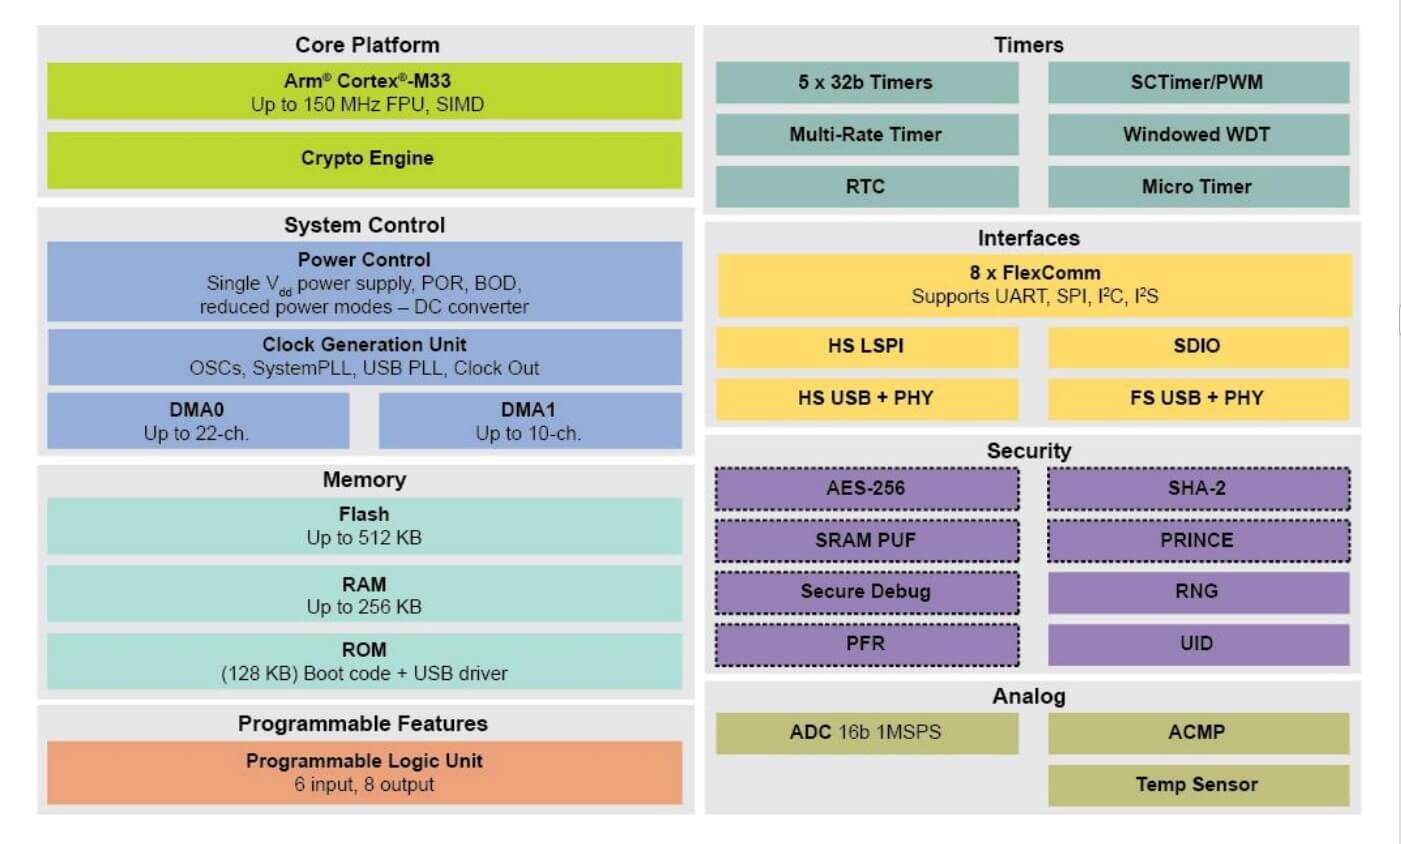 NXP introduces new products in the LPC5500 MCU series-SemiMedia